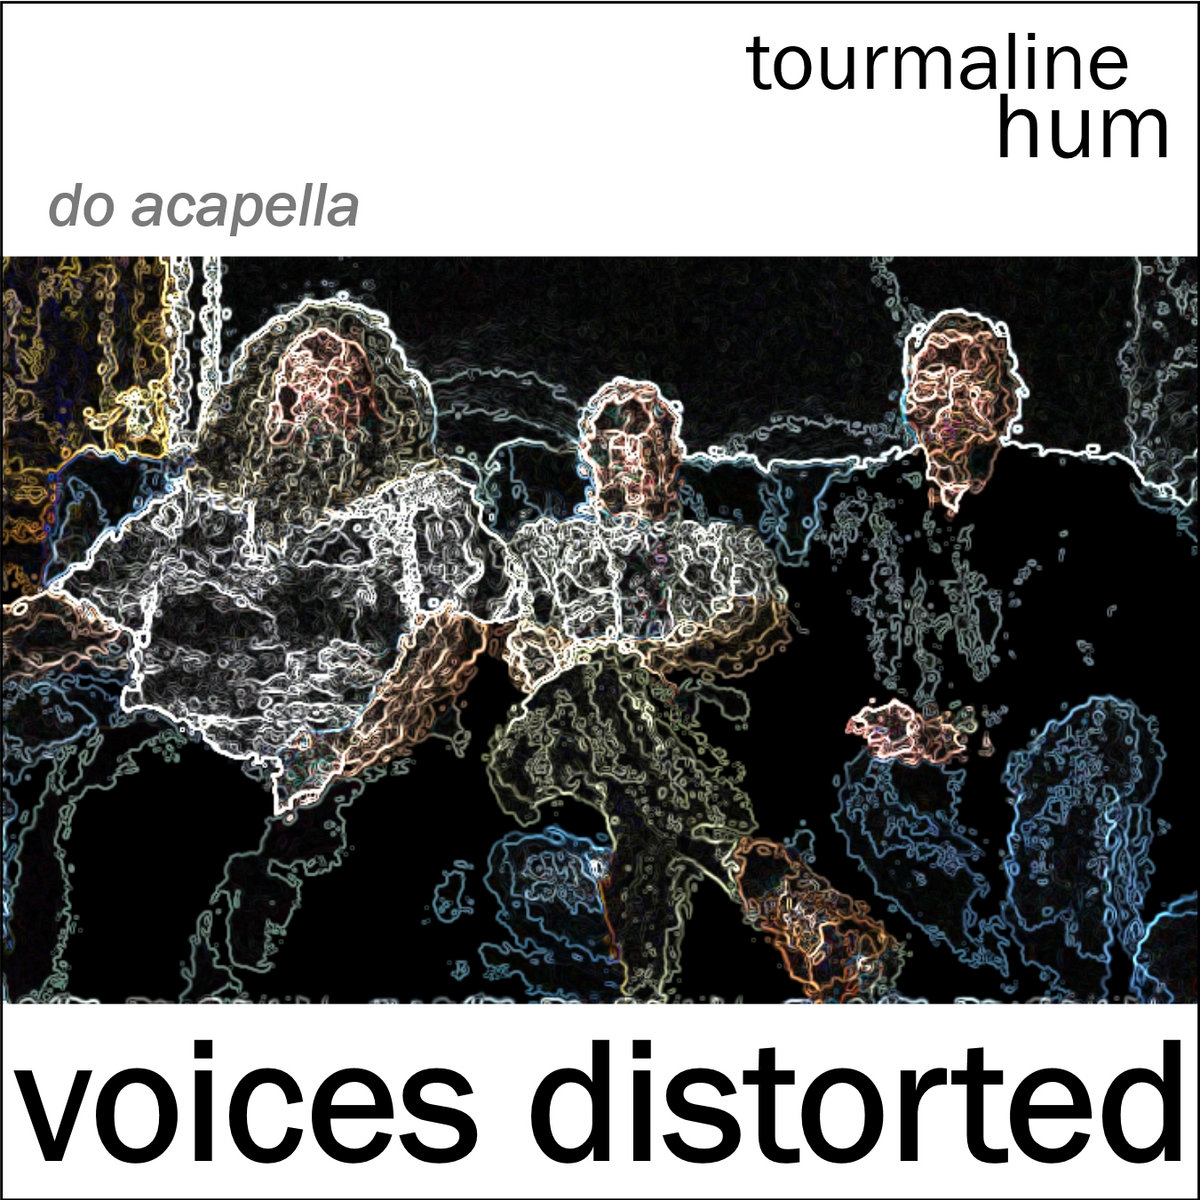 Voices Distorted (tourmaline hum do acapella) | The Committee for